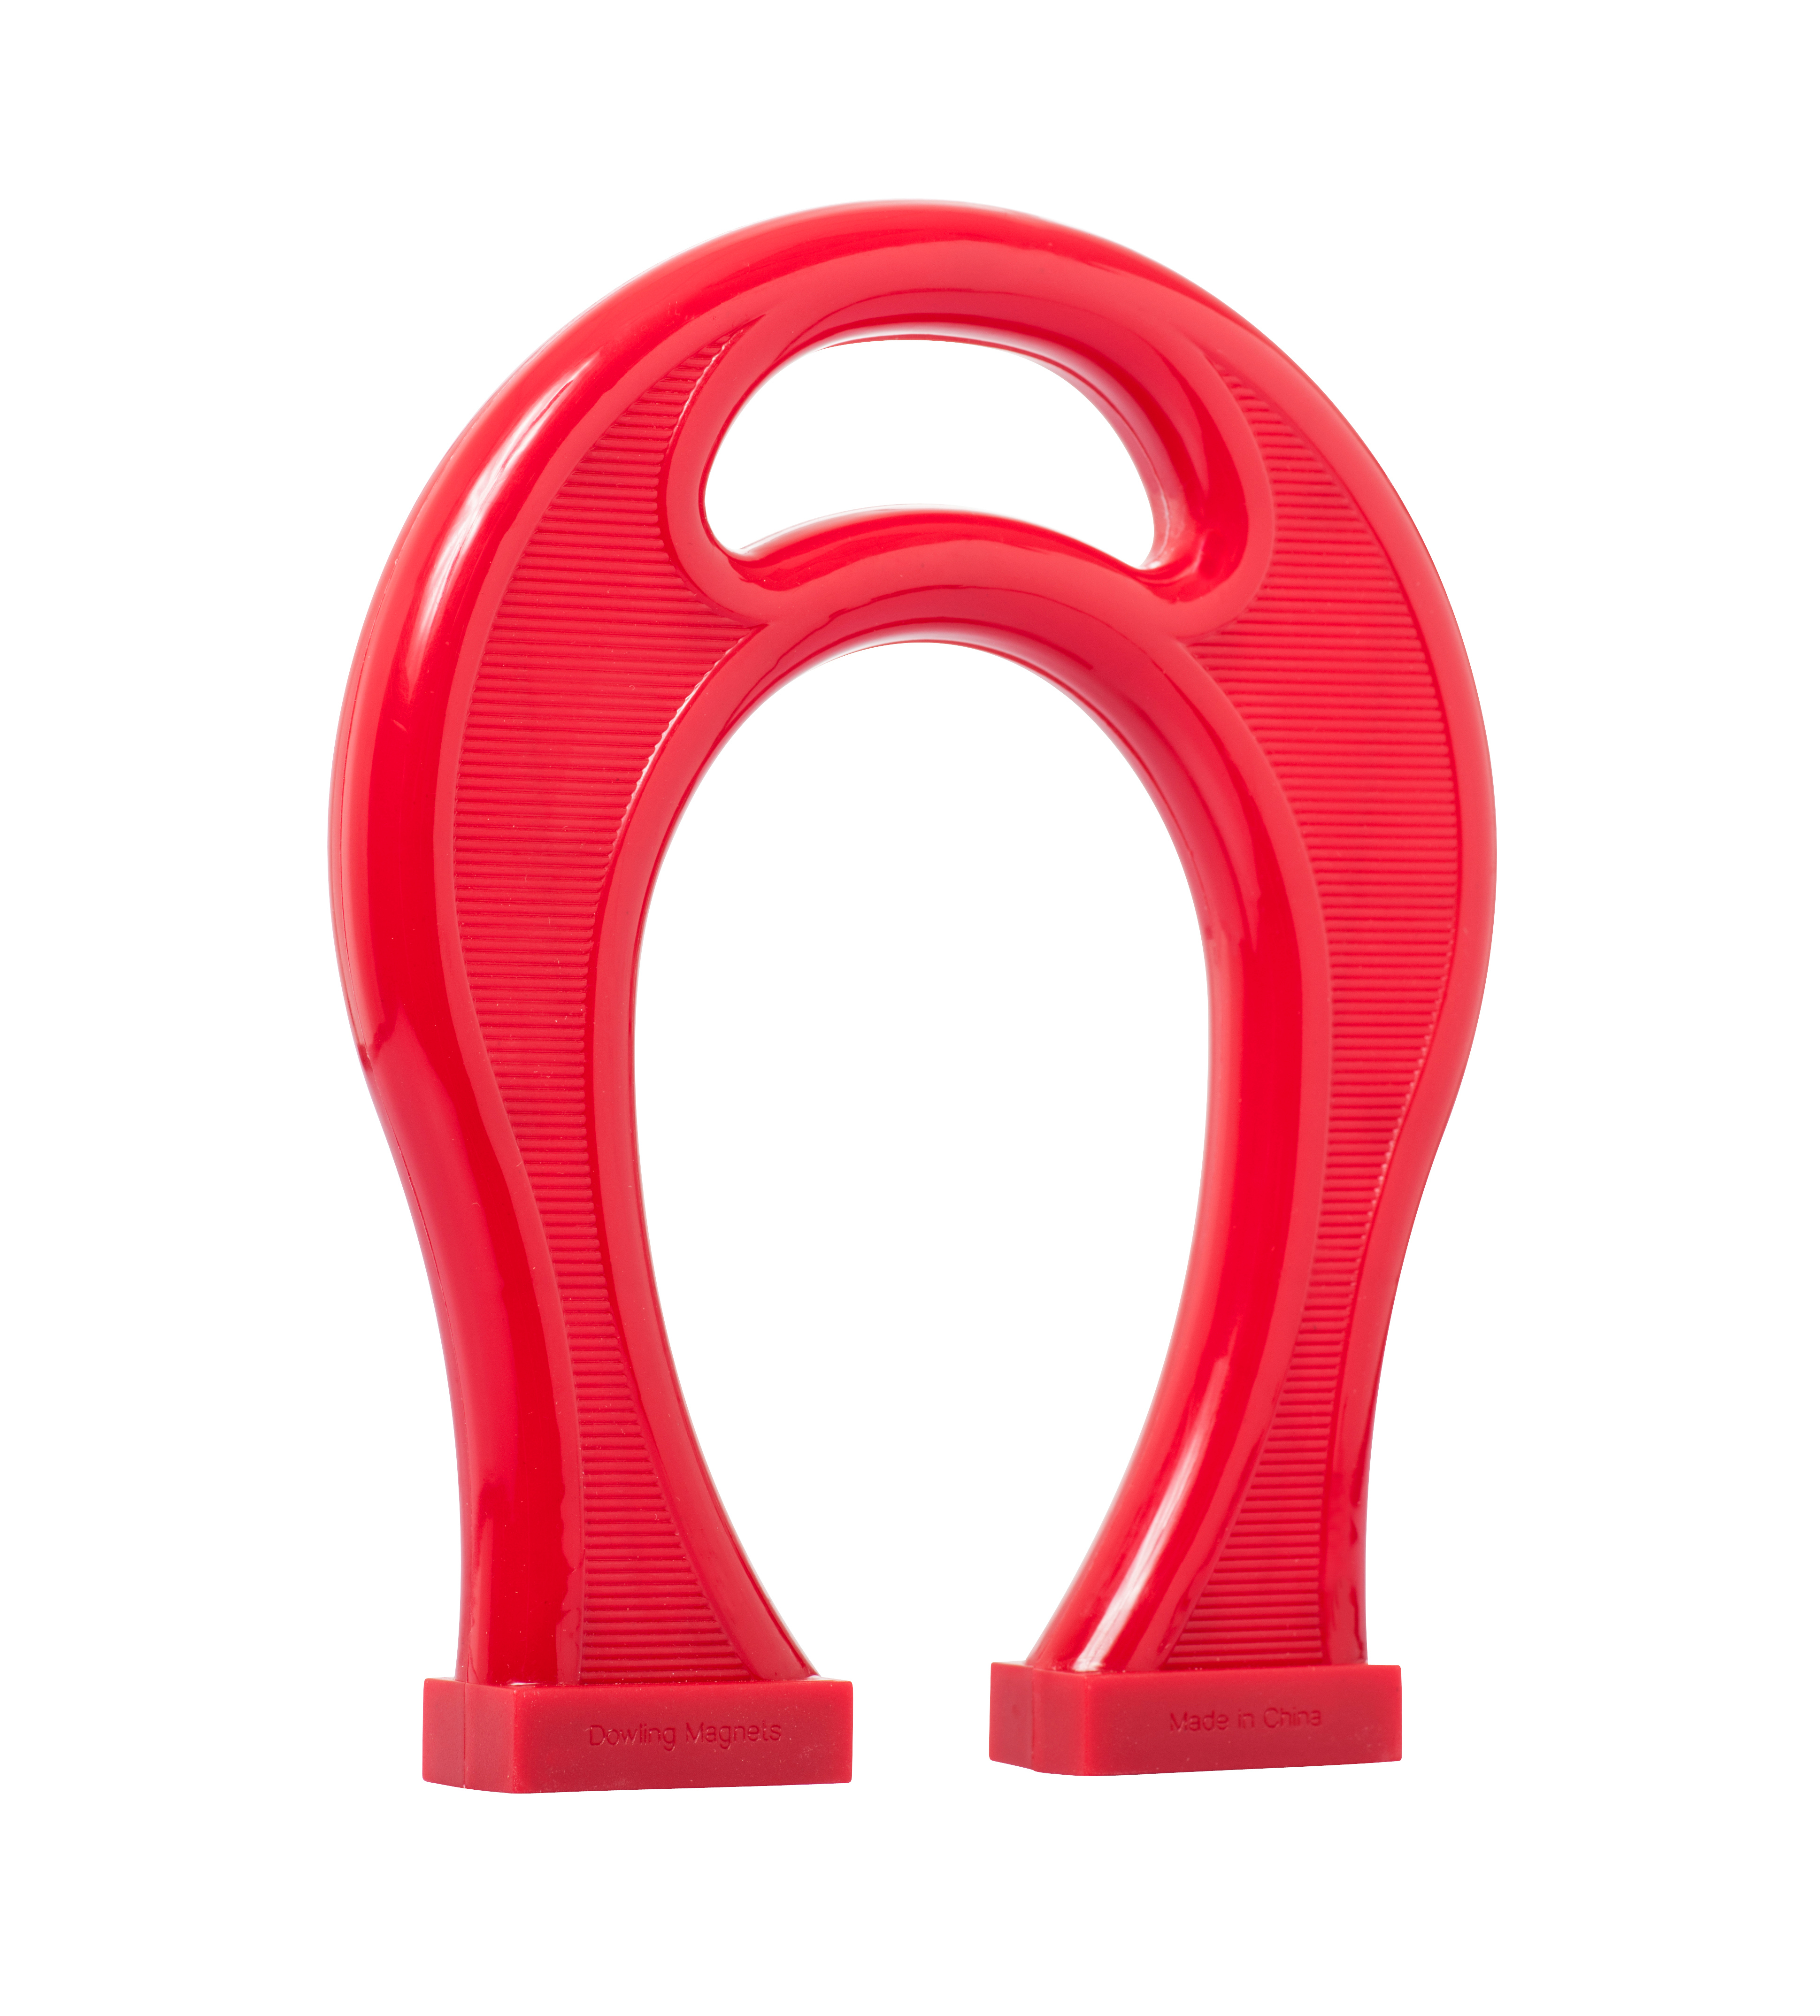 Dowling Magnets Giant Horseshoe Magnet